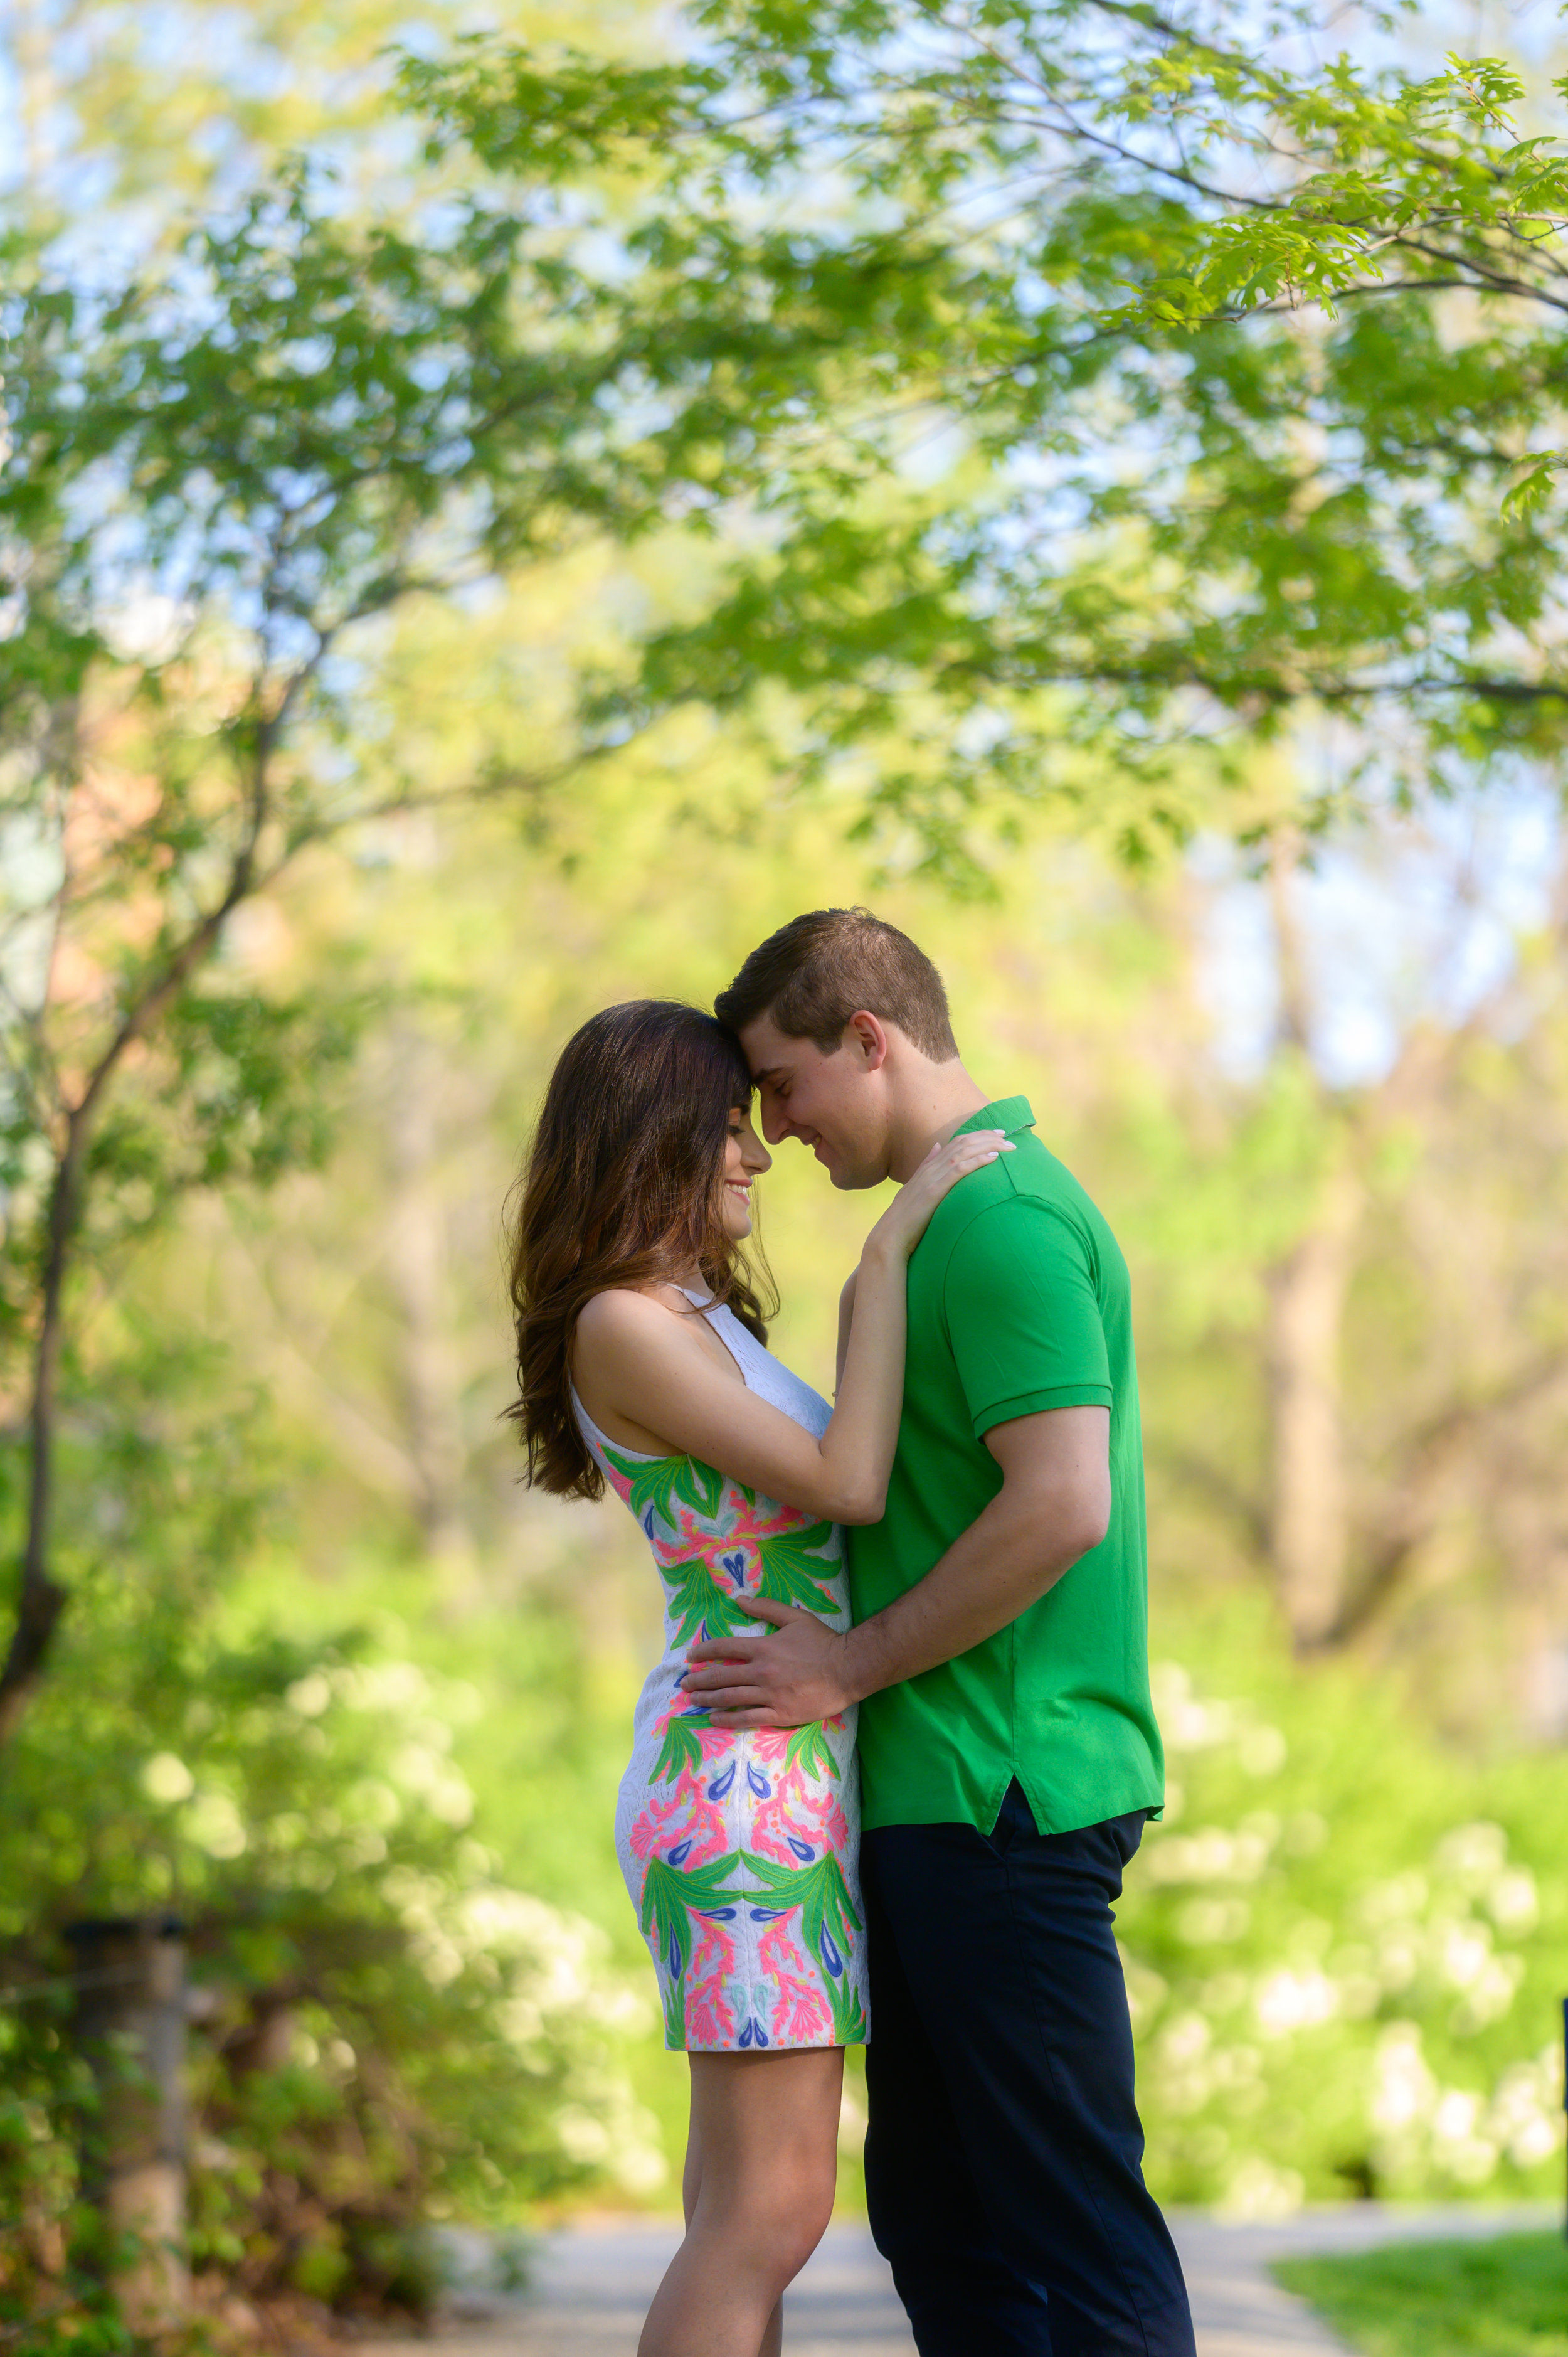 Karni  Zilvinas Engagement Session-1-3.jpg